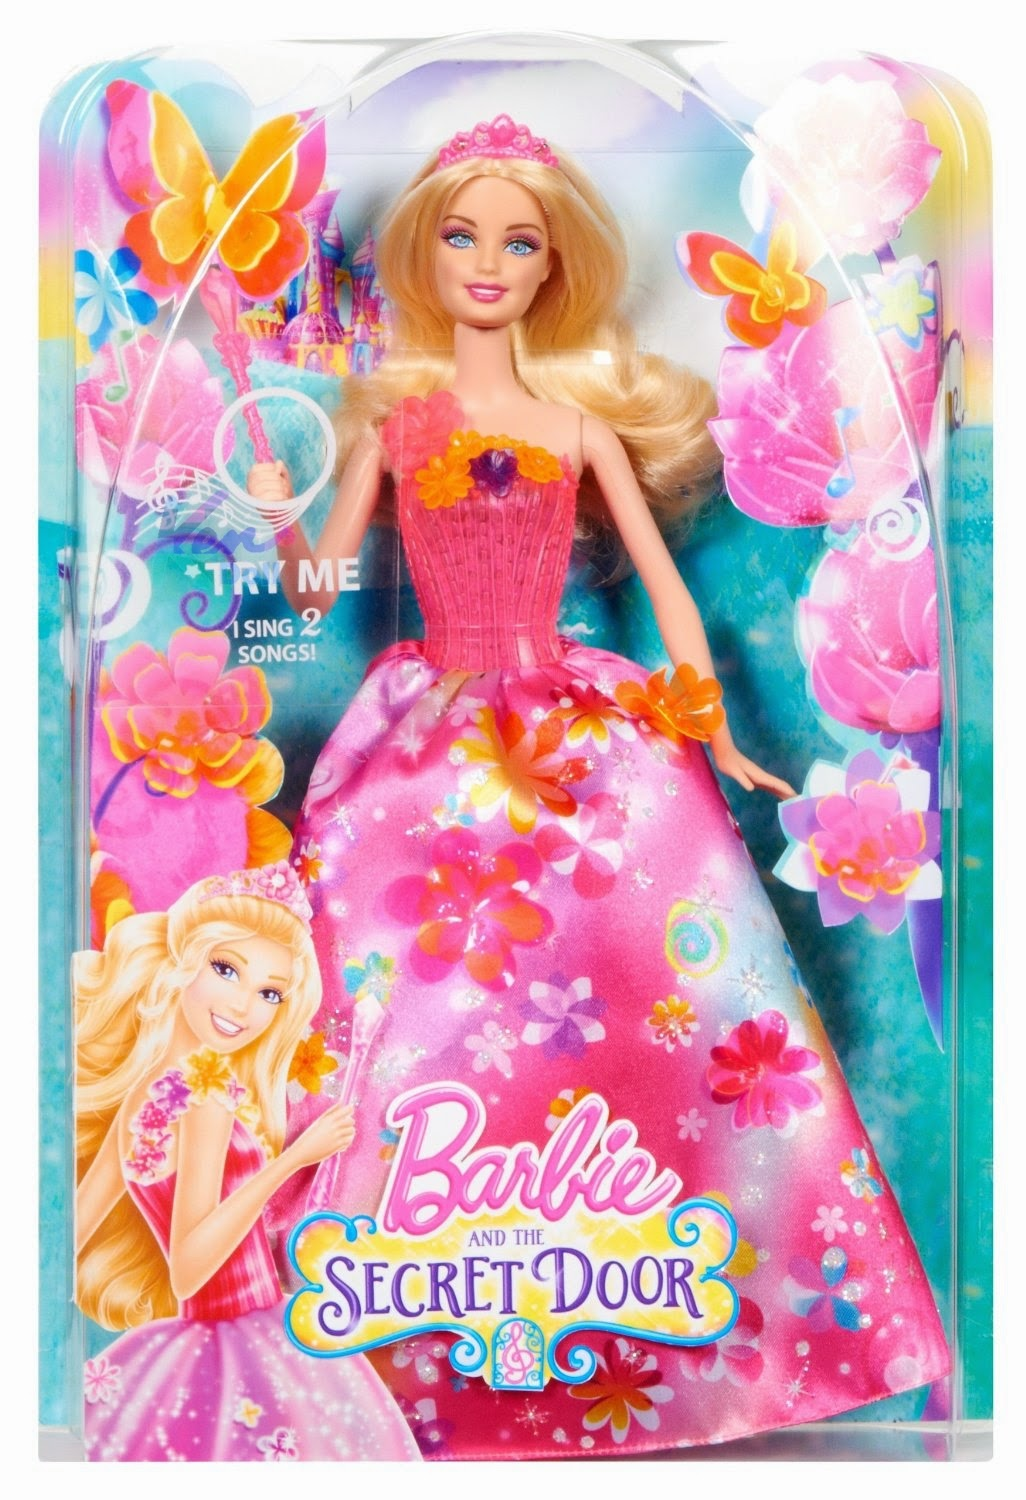 Barbie and the secret door 2014 doll box